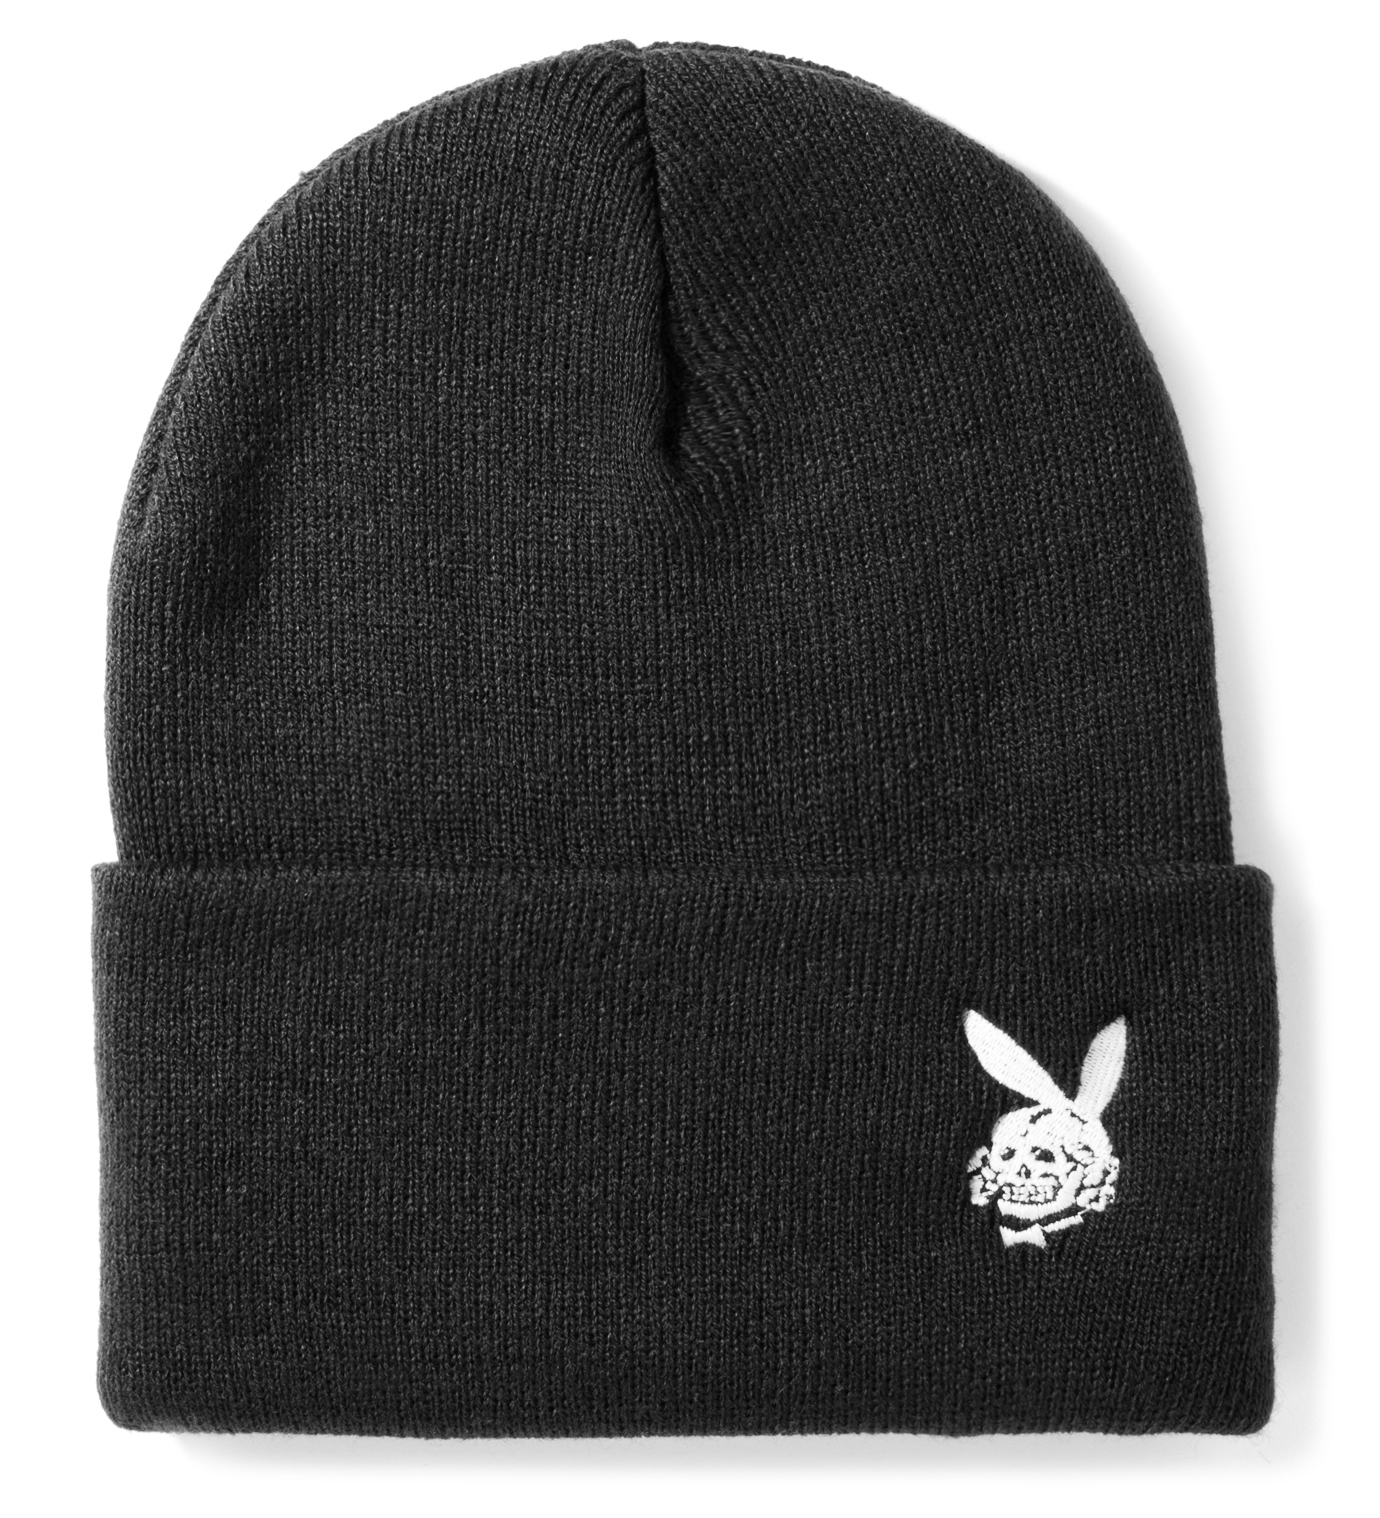 FUCT Black Death Bunny Watch Cap